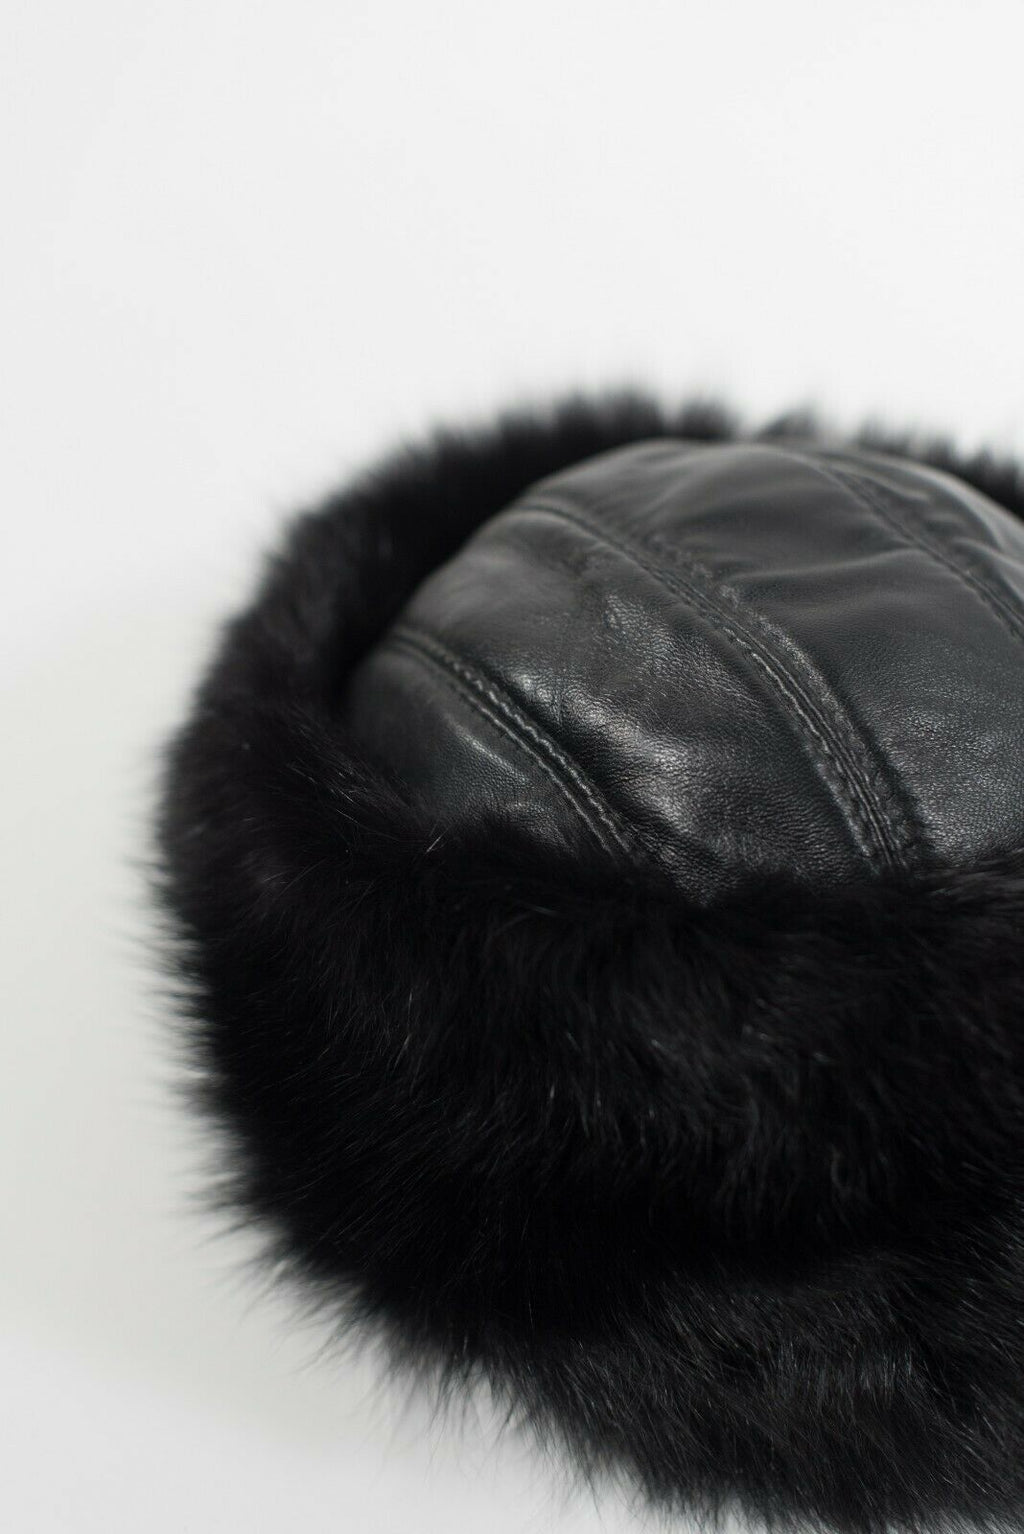 An Mapu Women's Size Small Black Hat Genuine Fur Soft Leather Panel Winter Cap